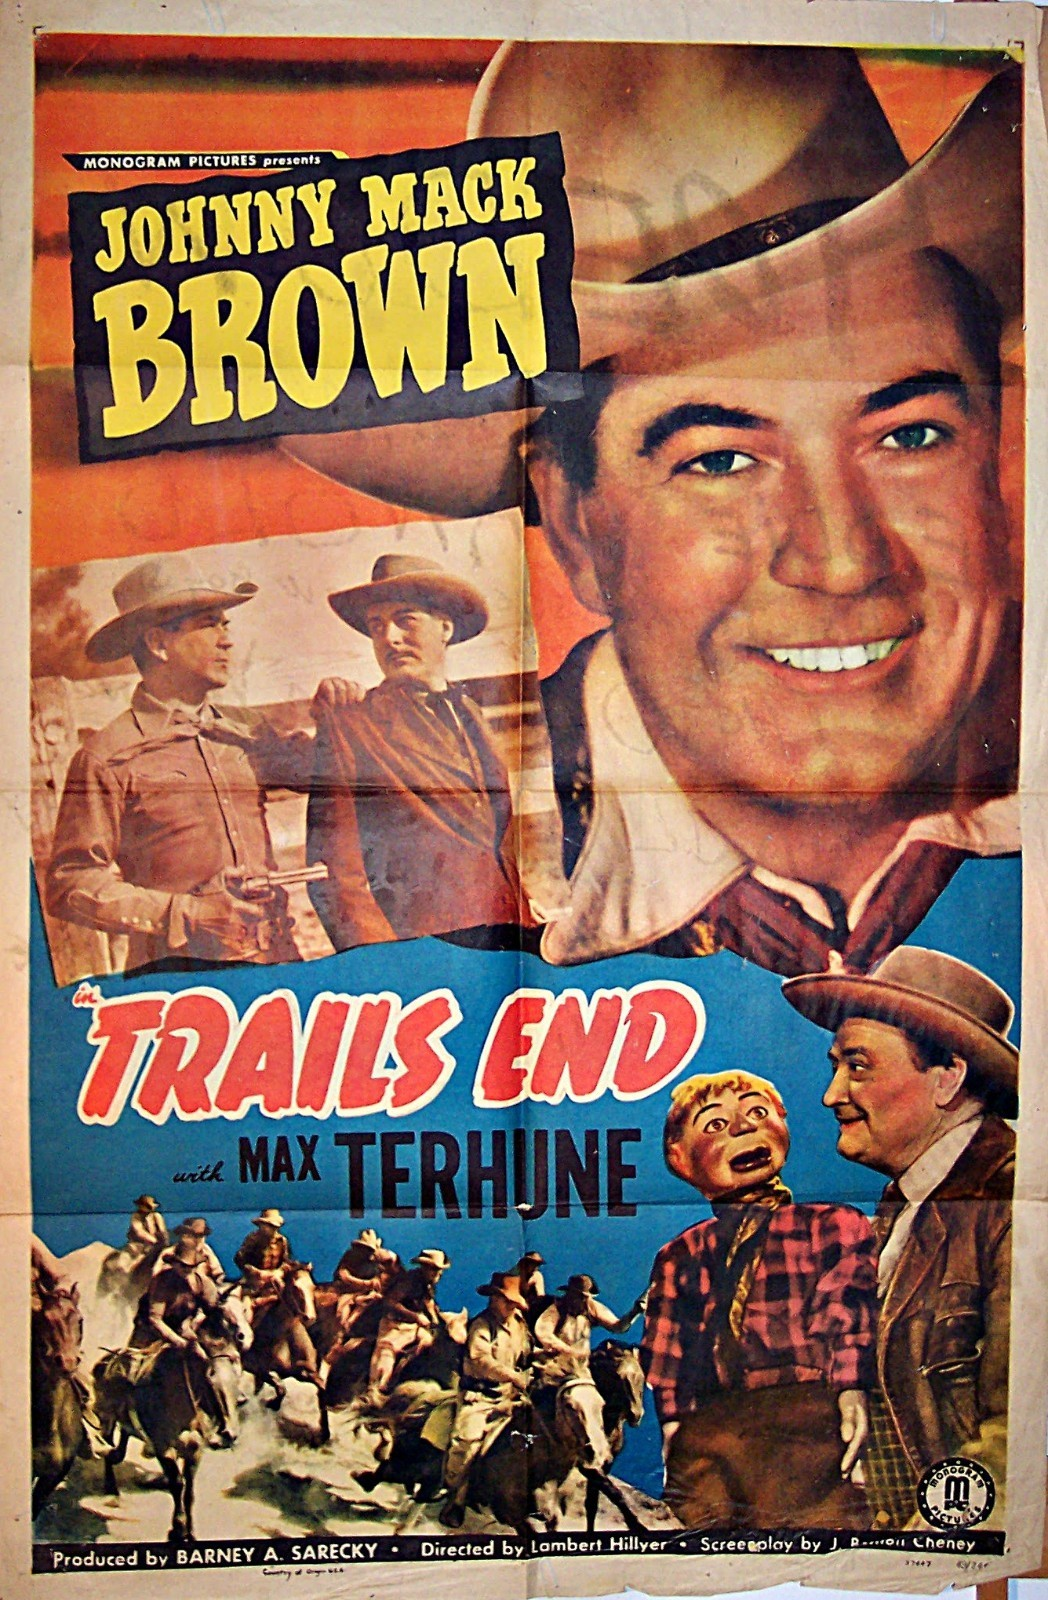 Pictured is a US one-sheet promotional poster for the 1949 Lambert Hillyer film Trails End starring Johnny Mack Brown.